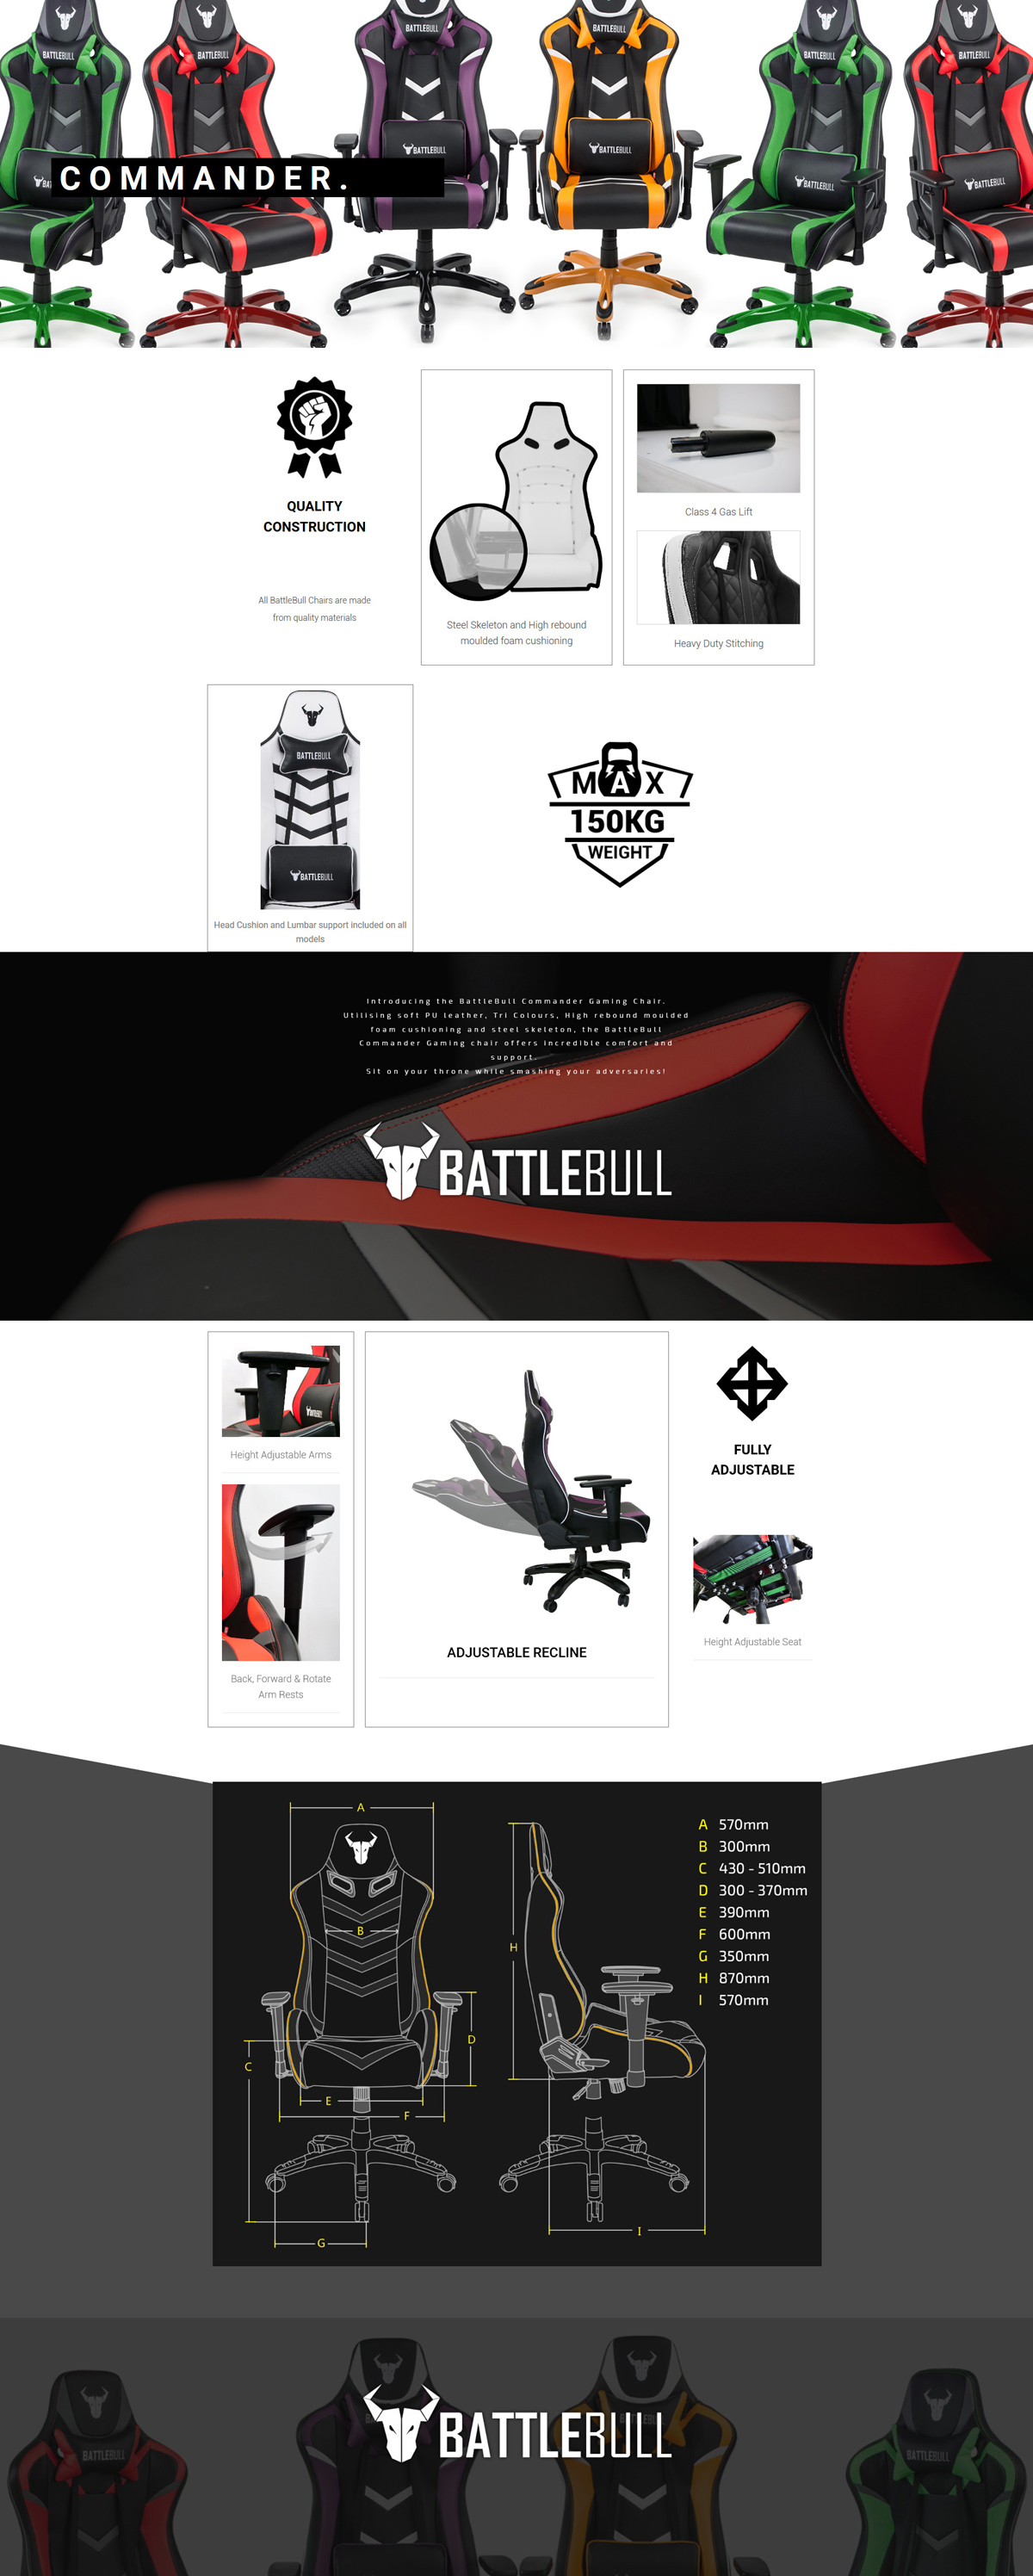 A large marketing image providing additional information about the product BattleBull Commander Gaming Chair Black/Orange/White - Additional alt info not provided